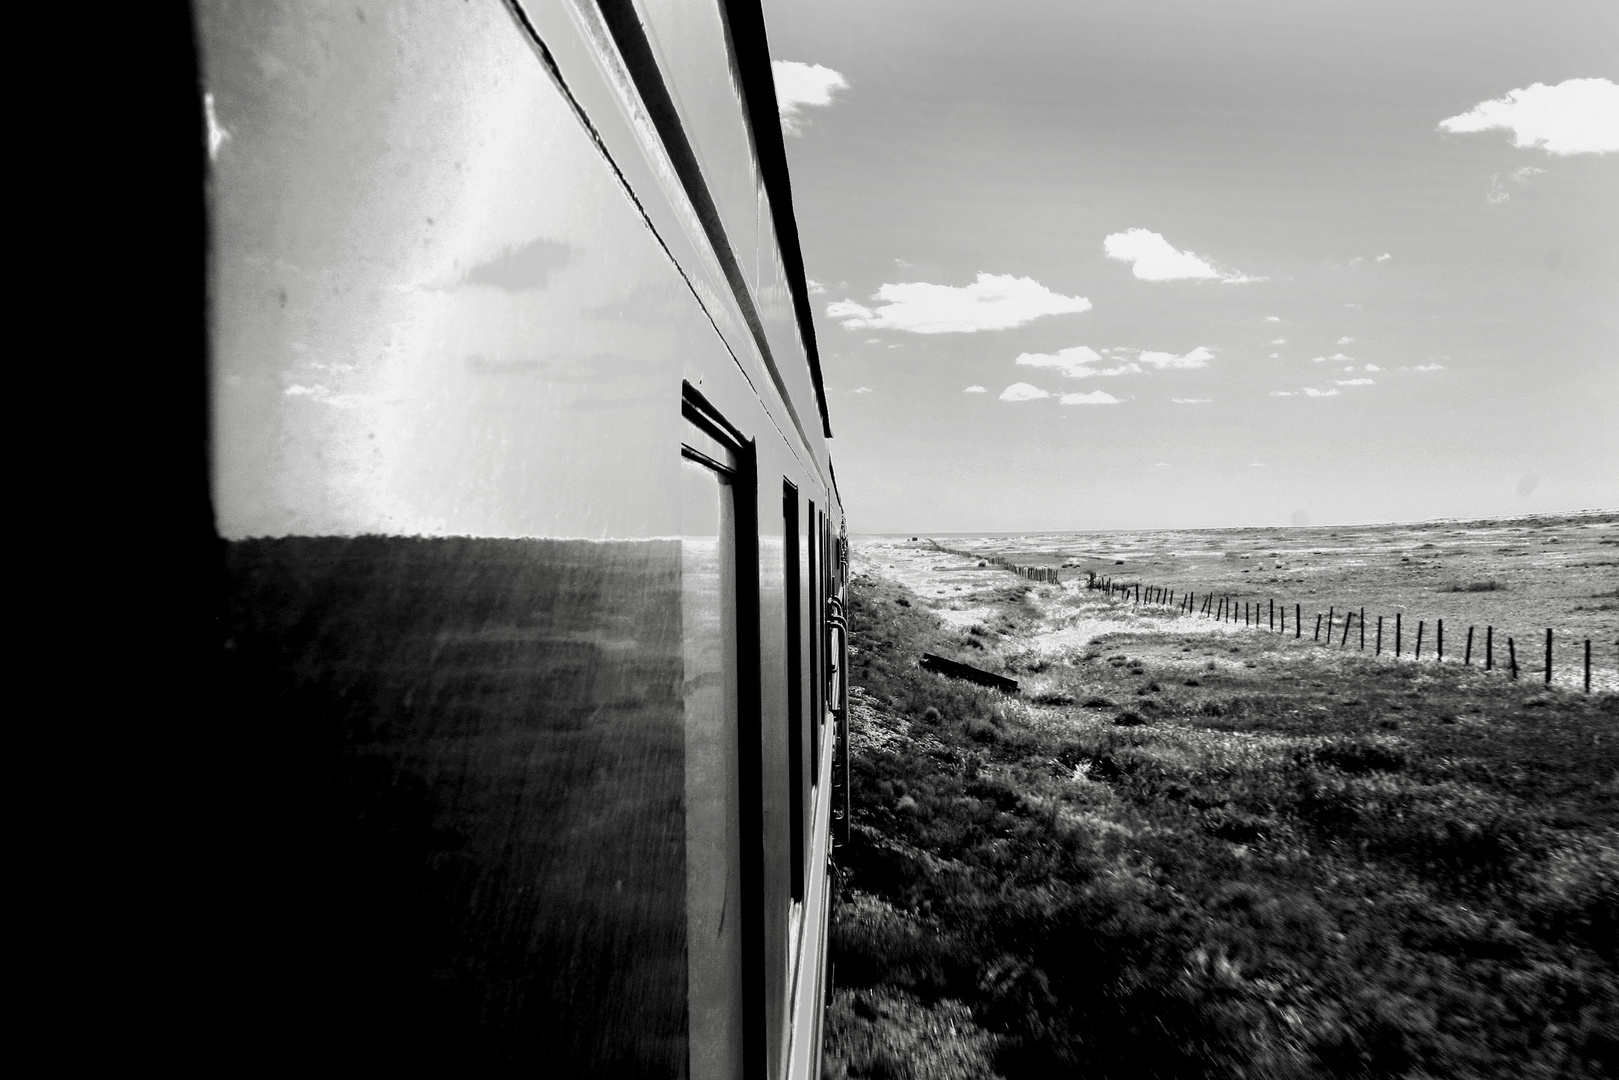 Somewhere on the Train